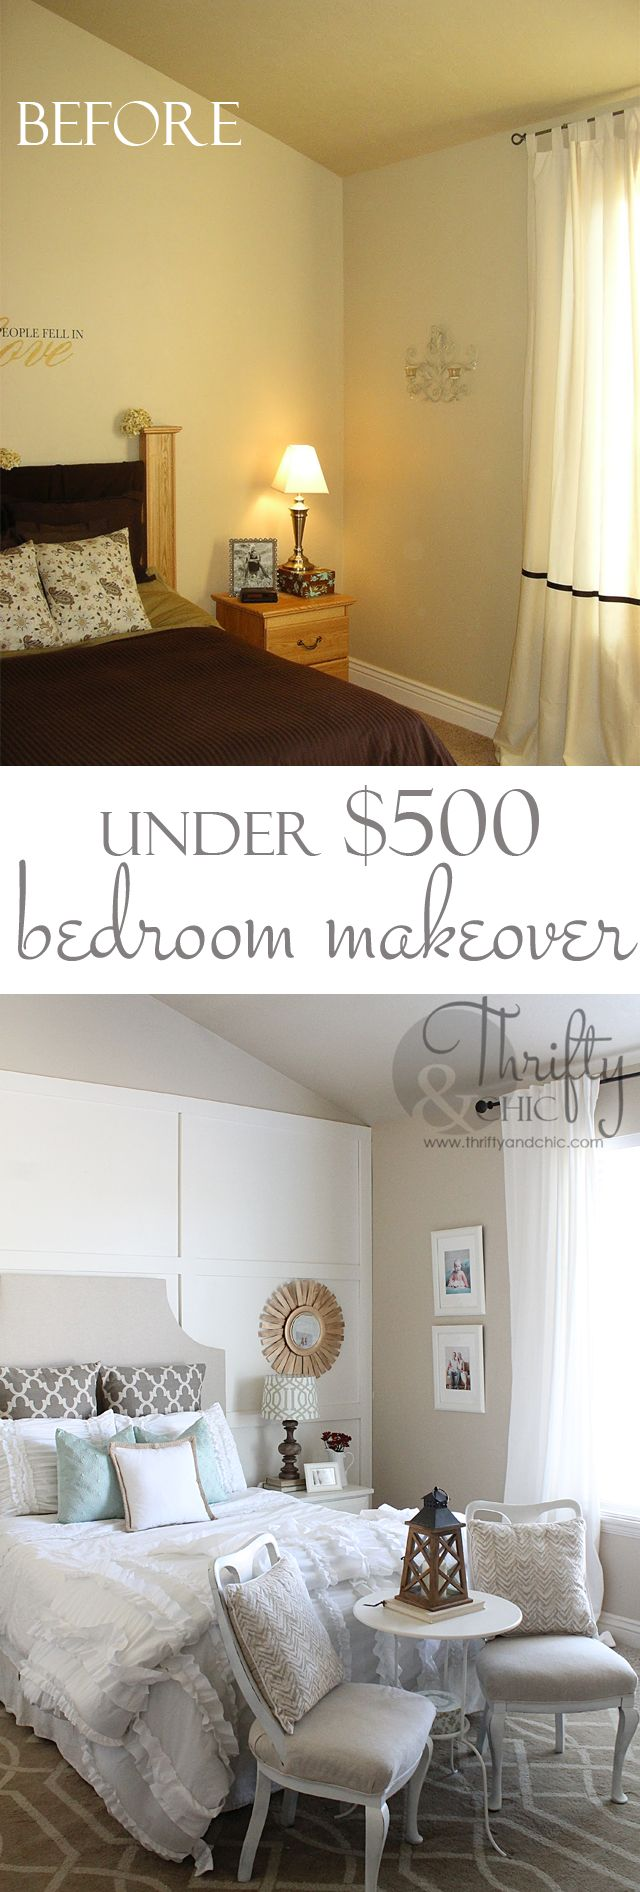 bedroom wall bedroom decor bedroom ideas budget bedroom guest bedrooms